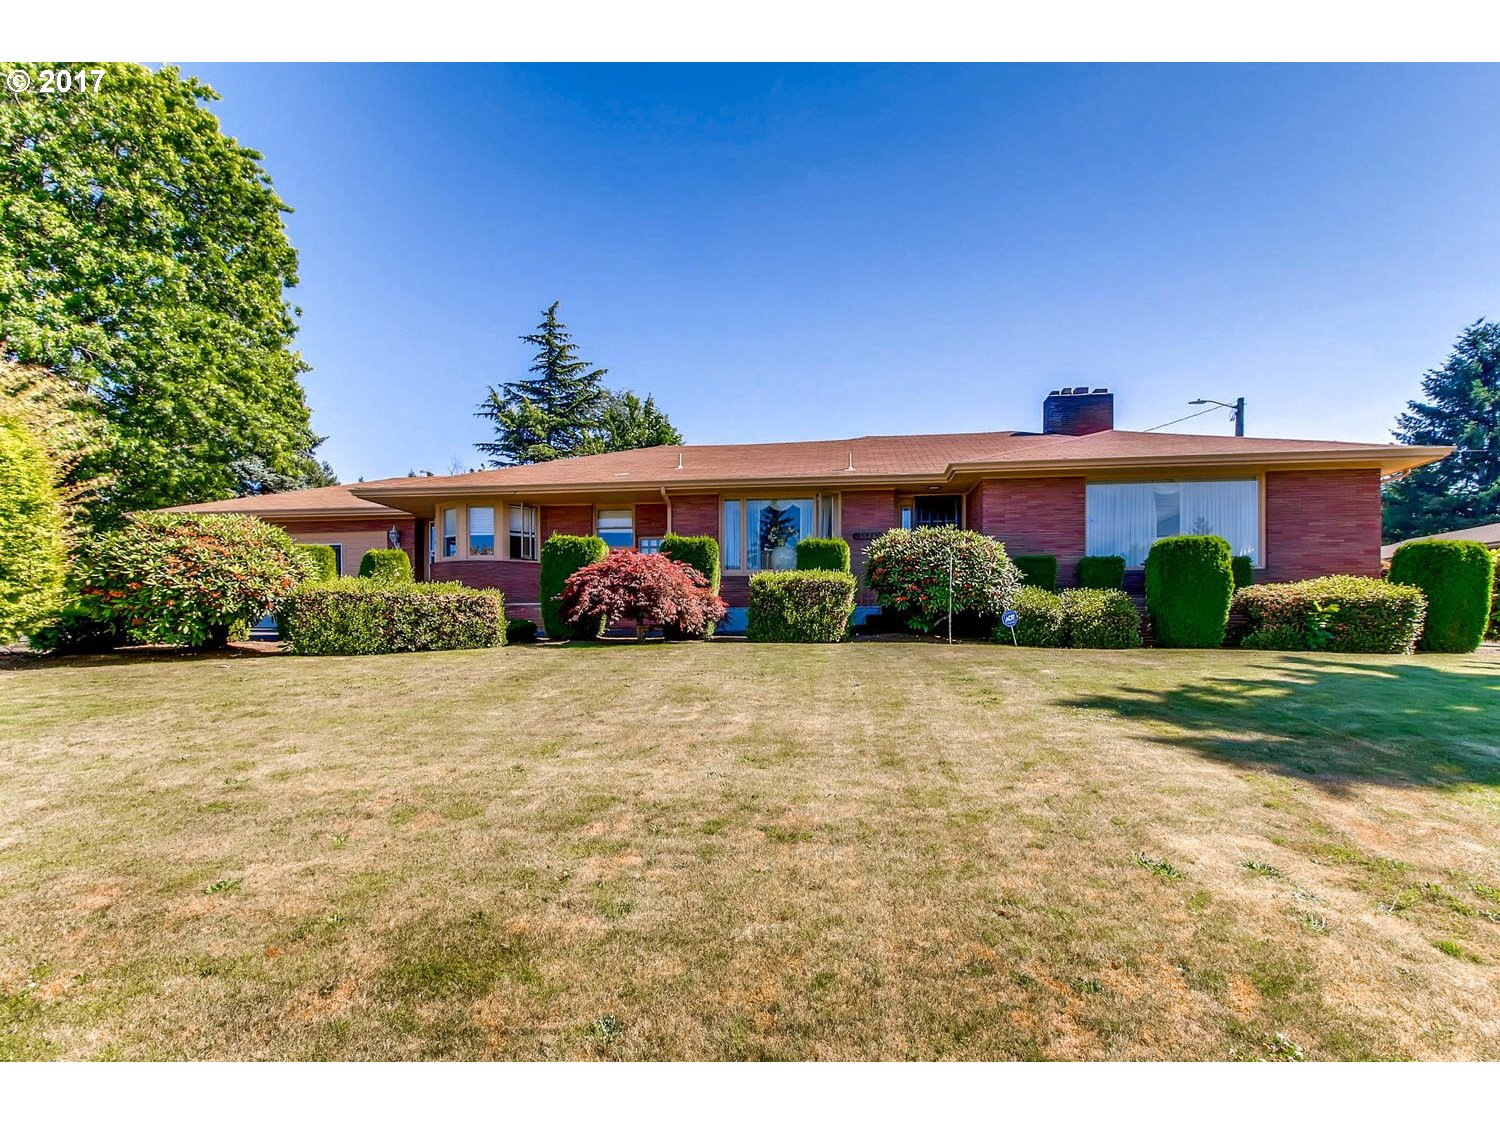 1916 NW DIVISION ST, Gresham, OR 97030